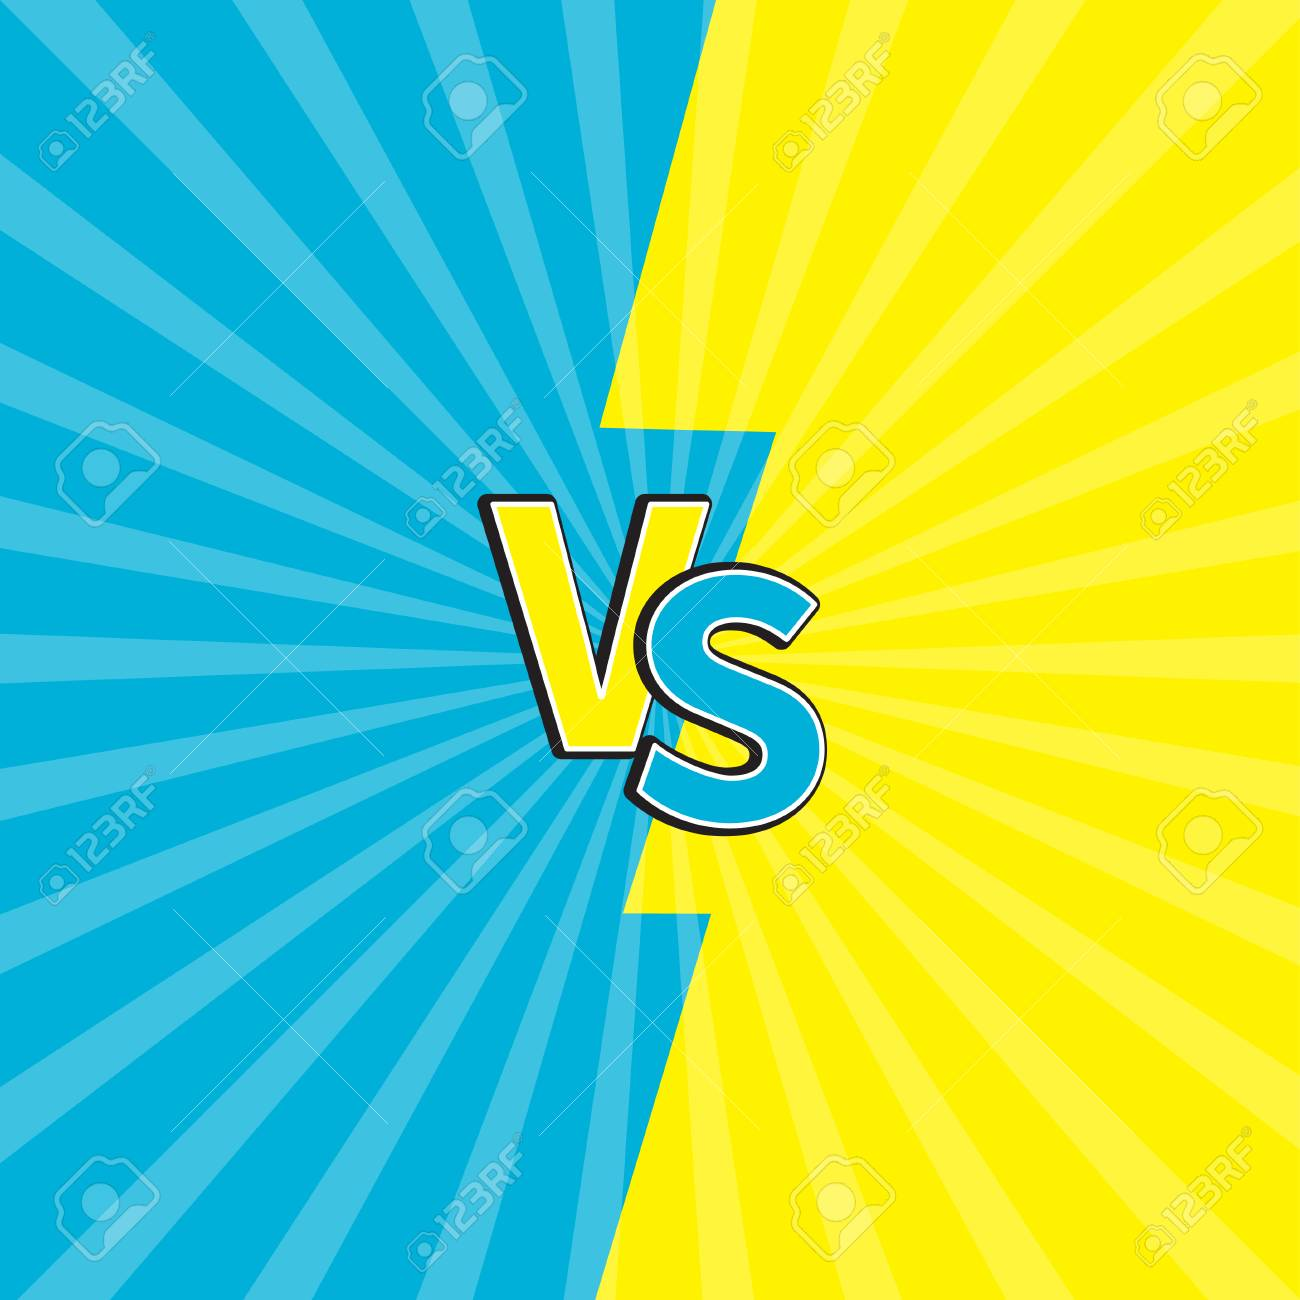 vector versus letters or vs battle fight competition cute cartoon style blue yellow background template sunburst with ray of light starburst effect